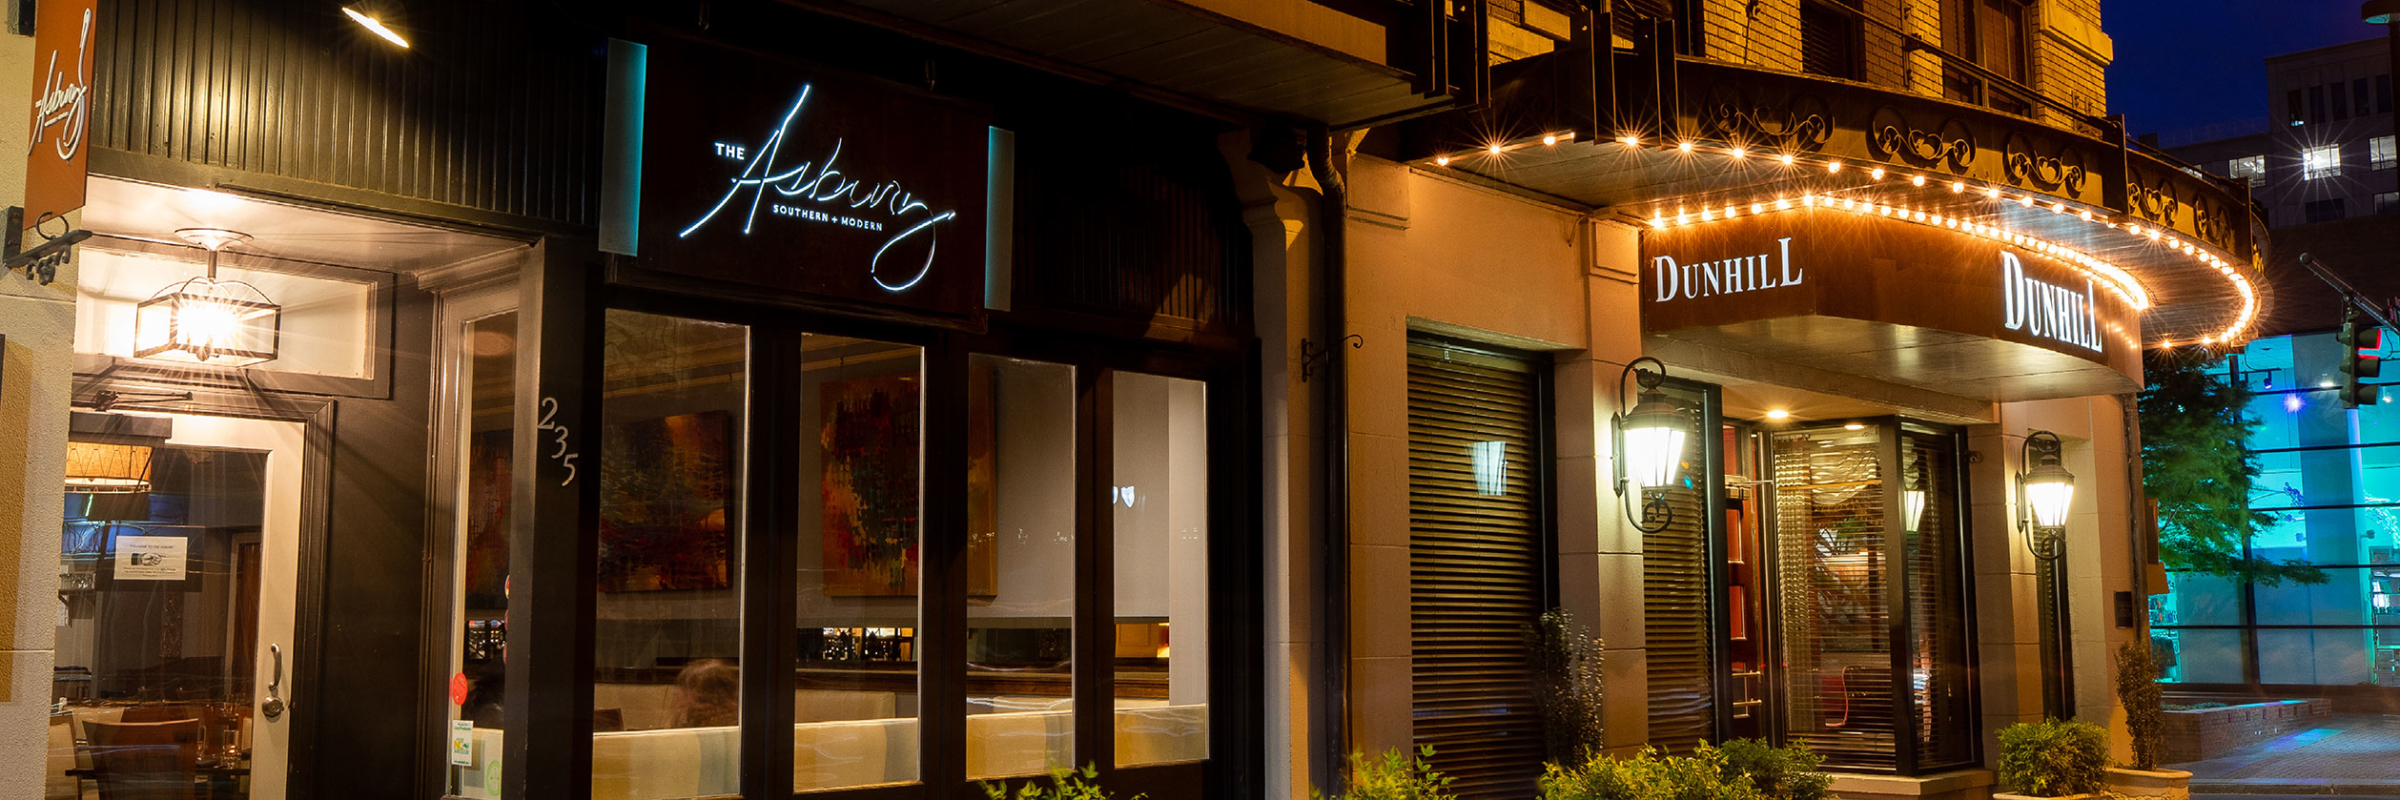 The-Asbury-at-The-Dunhill-Uptown-Charlotte-NC-Dining-Photo-by-Peter-Taylor